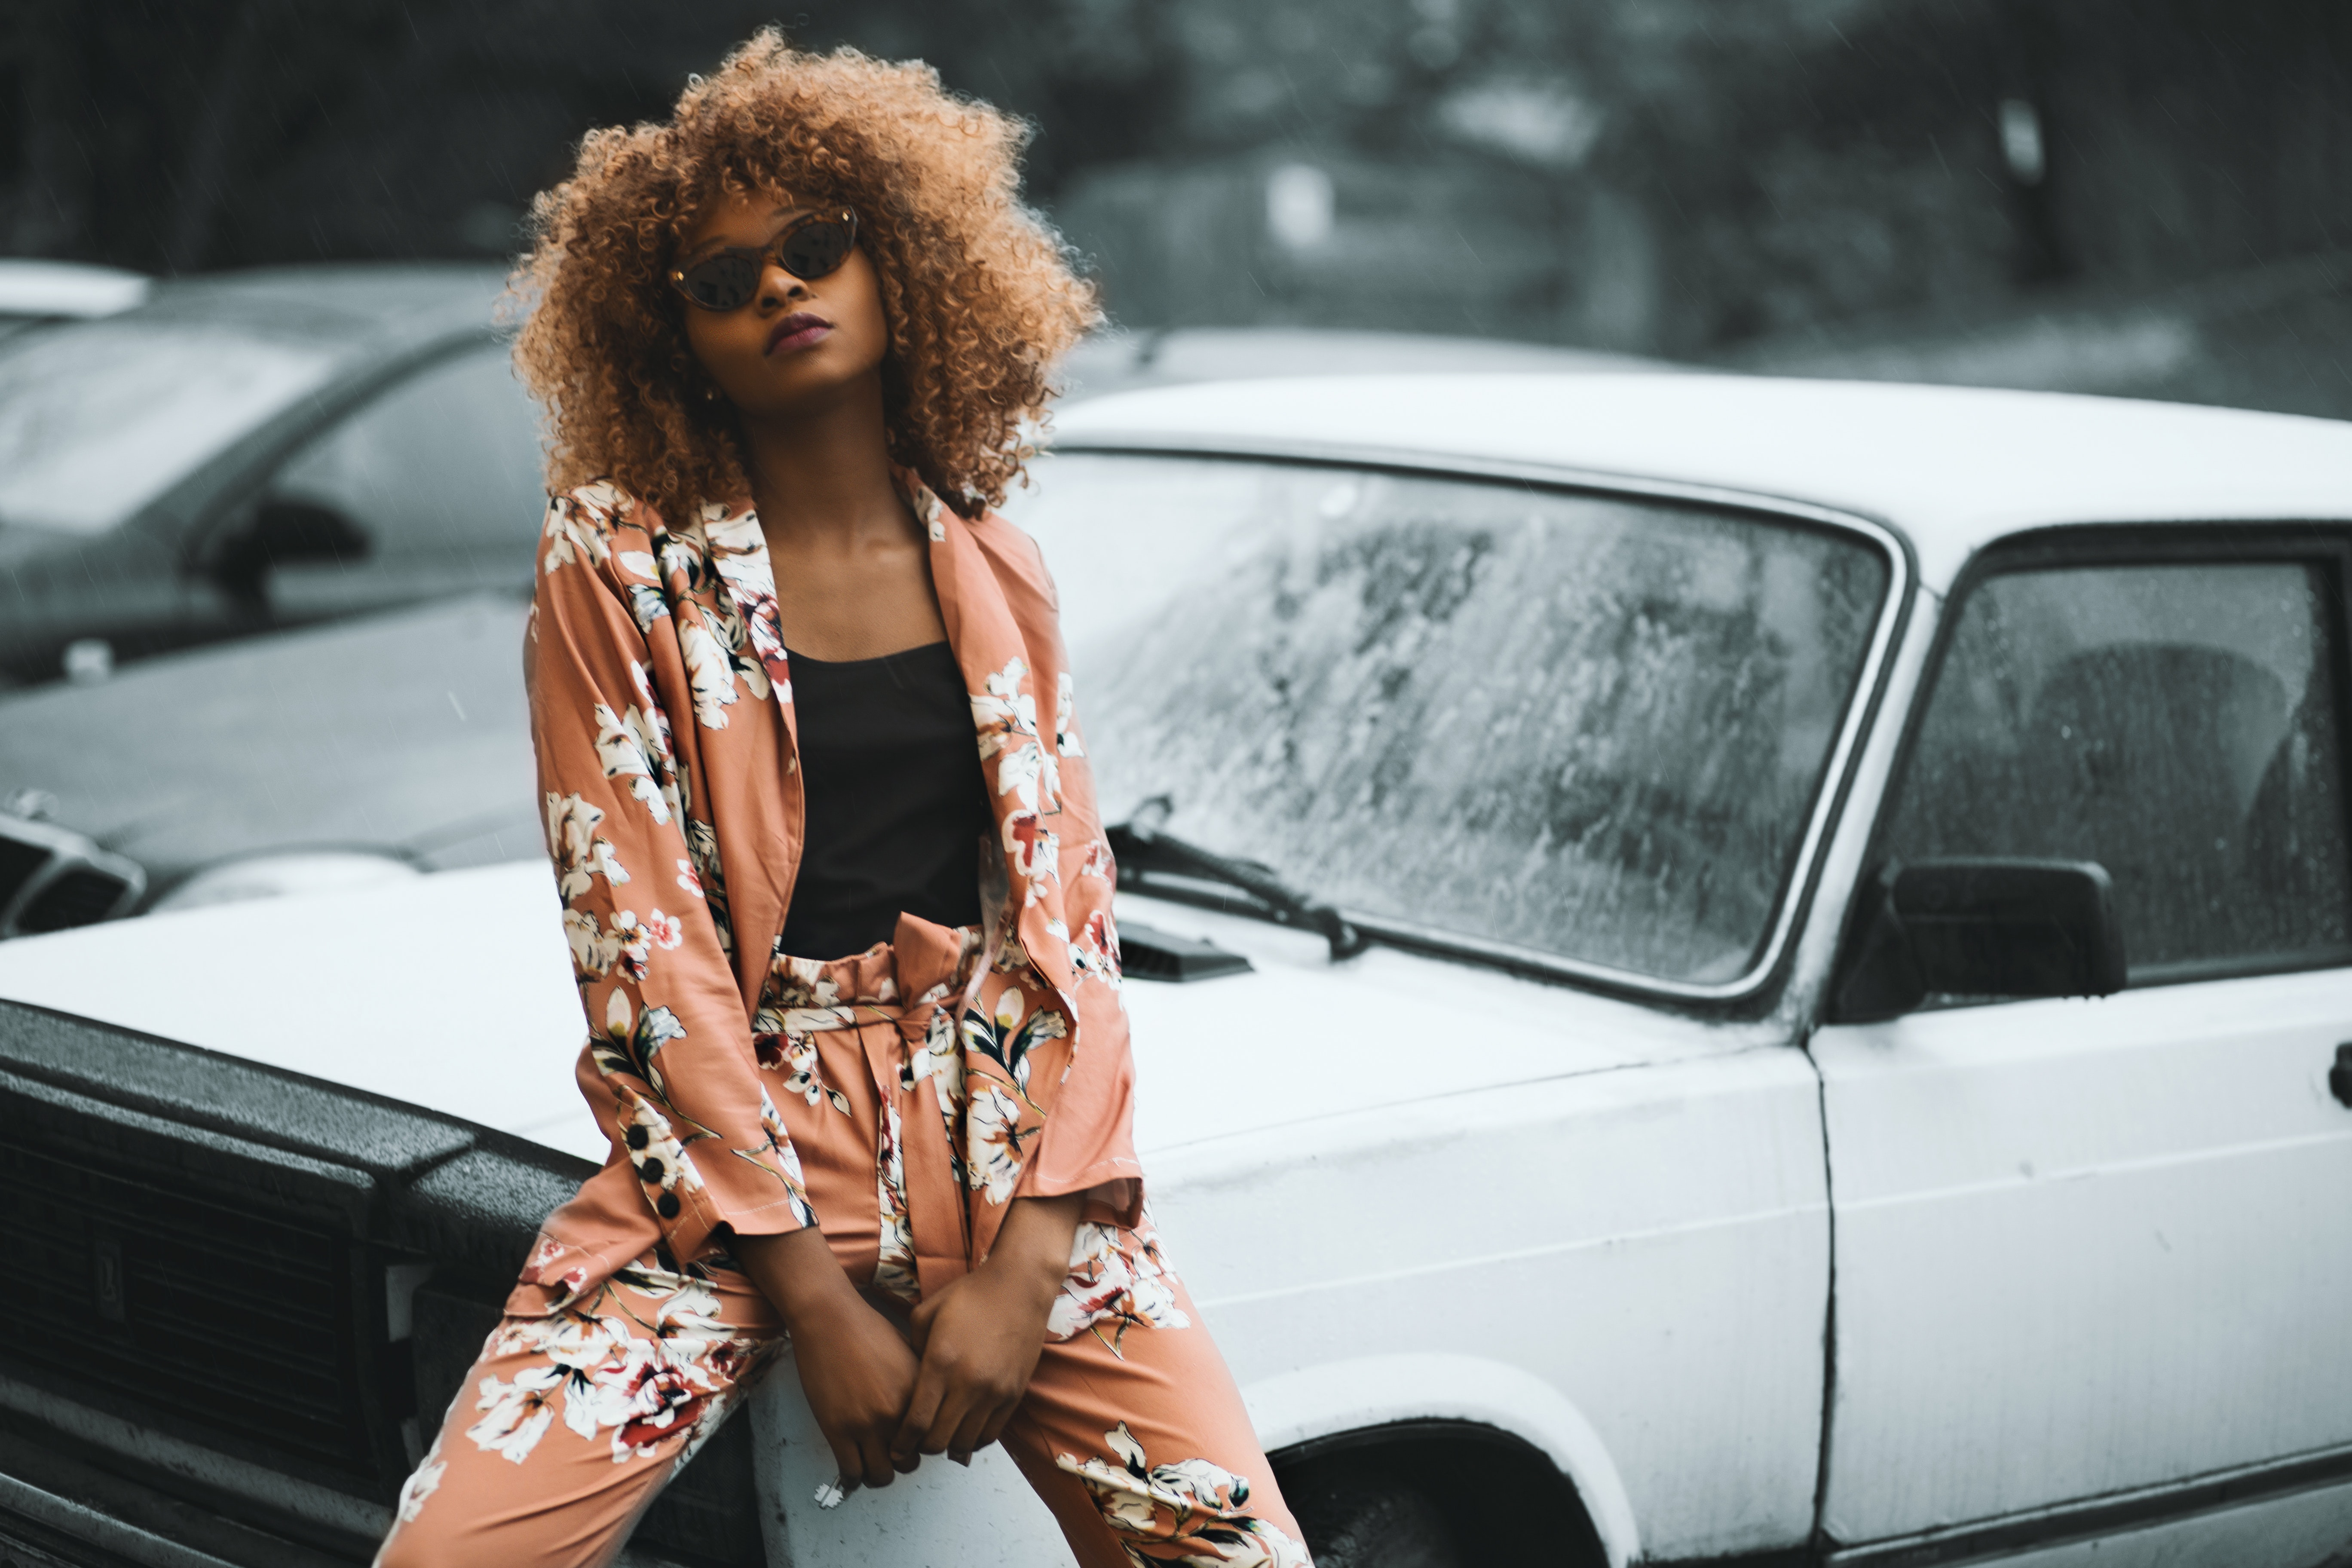 Woman wearing brown floral print coat and pants sitting on car photo